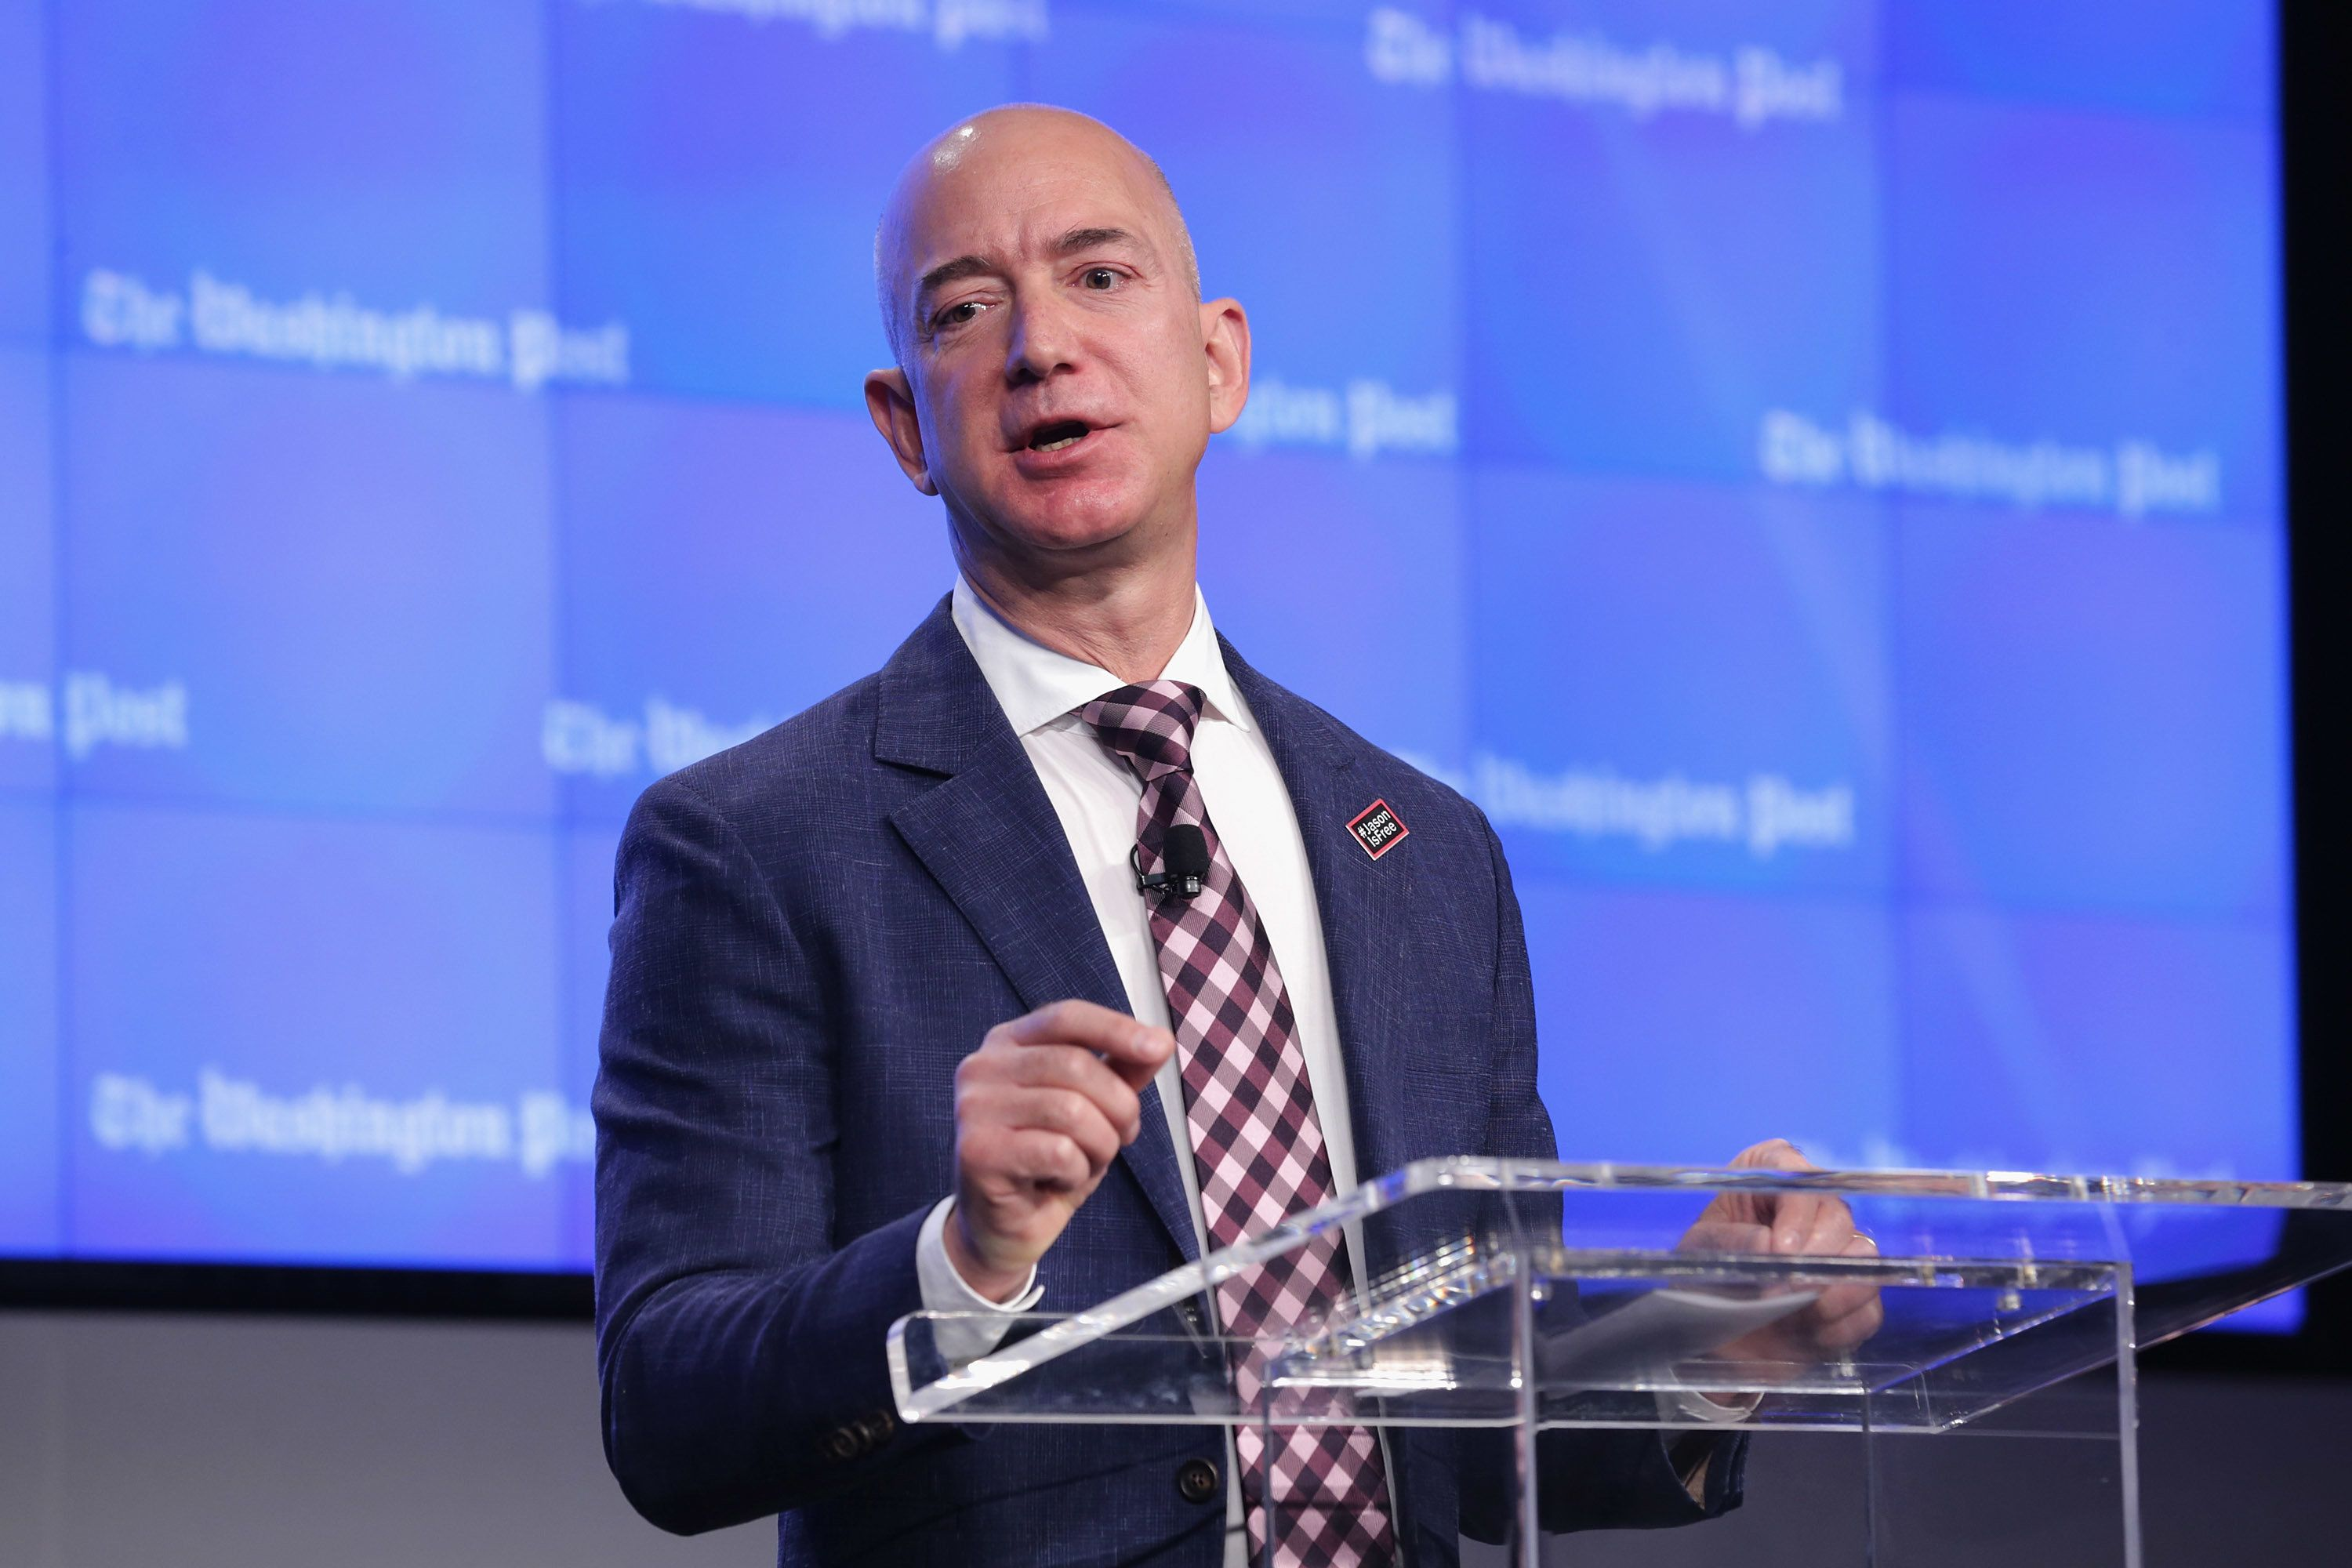 WASHINGTON, DC - JANUARY 28:  Amazon founder and Washington Post owner Jeff Bezos delivers remarks during the opening ceremony of the media company's new location January 28, 2016 in Washington, DC. Bezos purchased the newspaper and media company in October of 2013 from the storied Graham family.  (Photo by Chip Somodevilla/Getty Images)